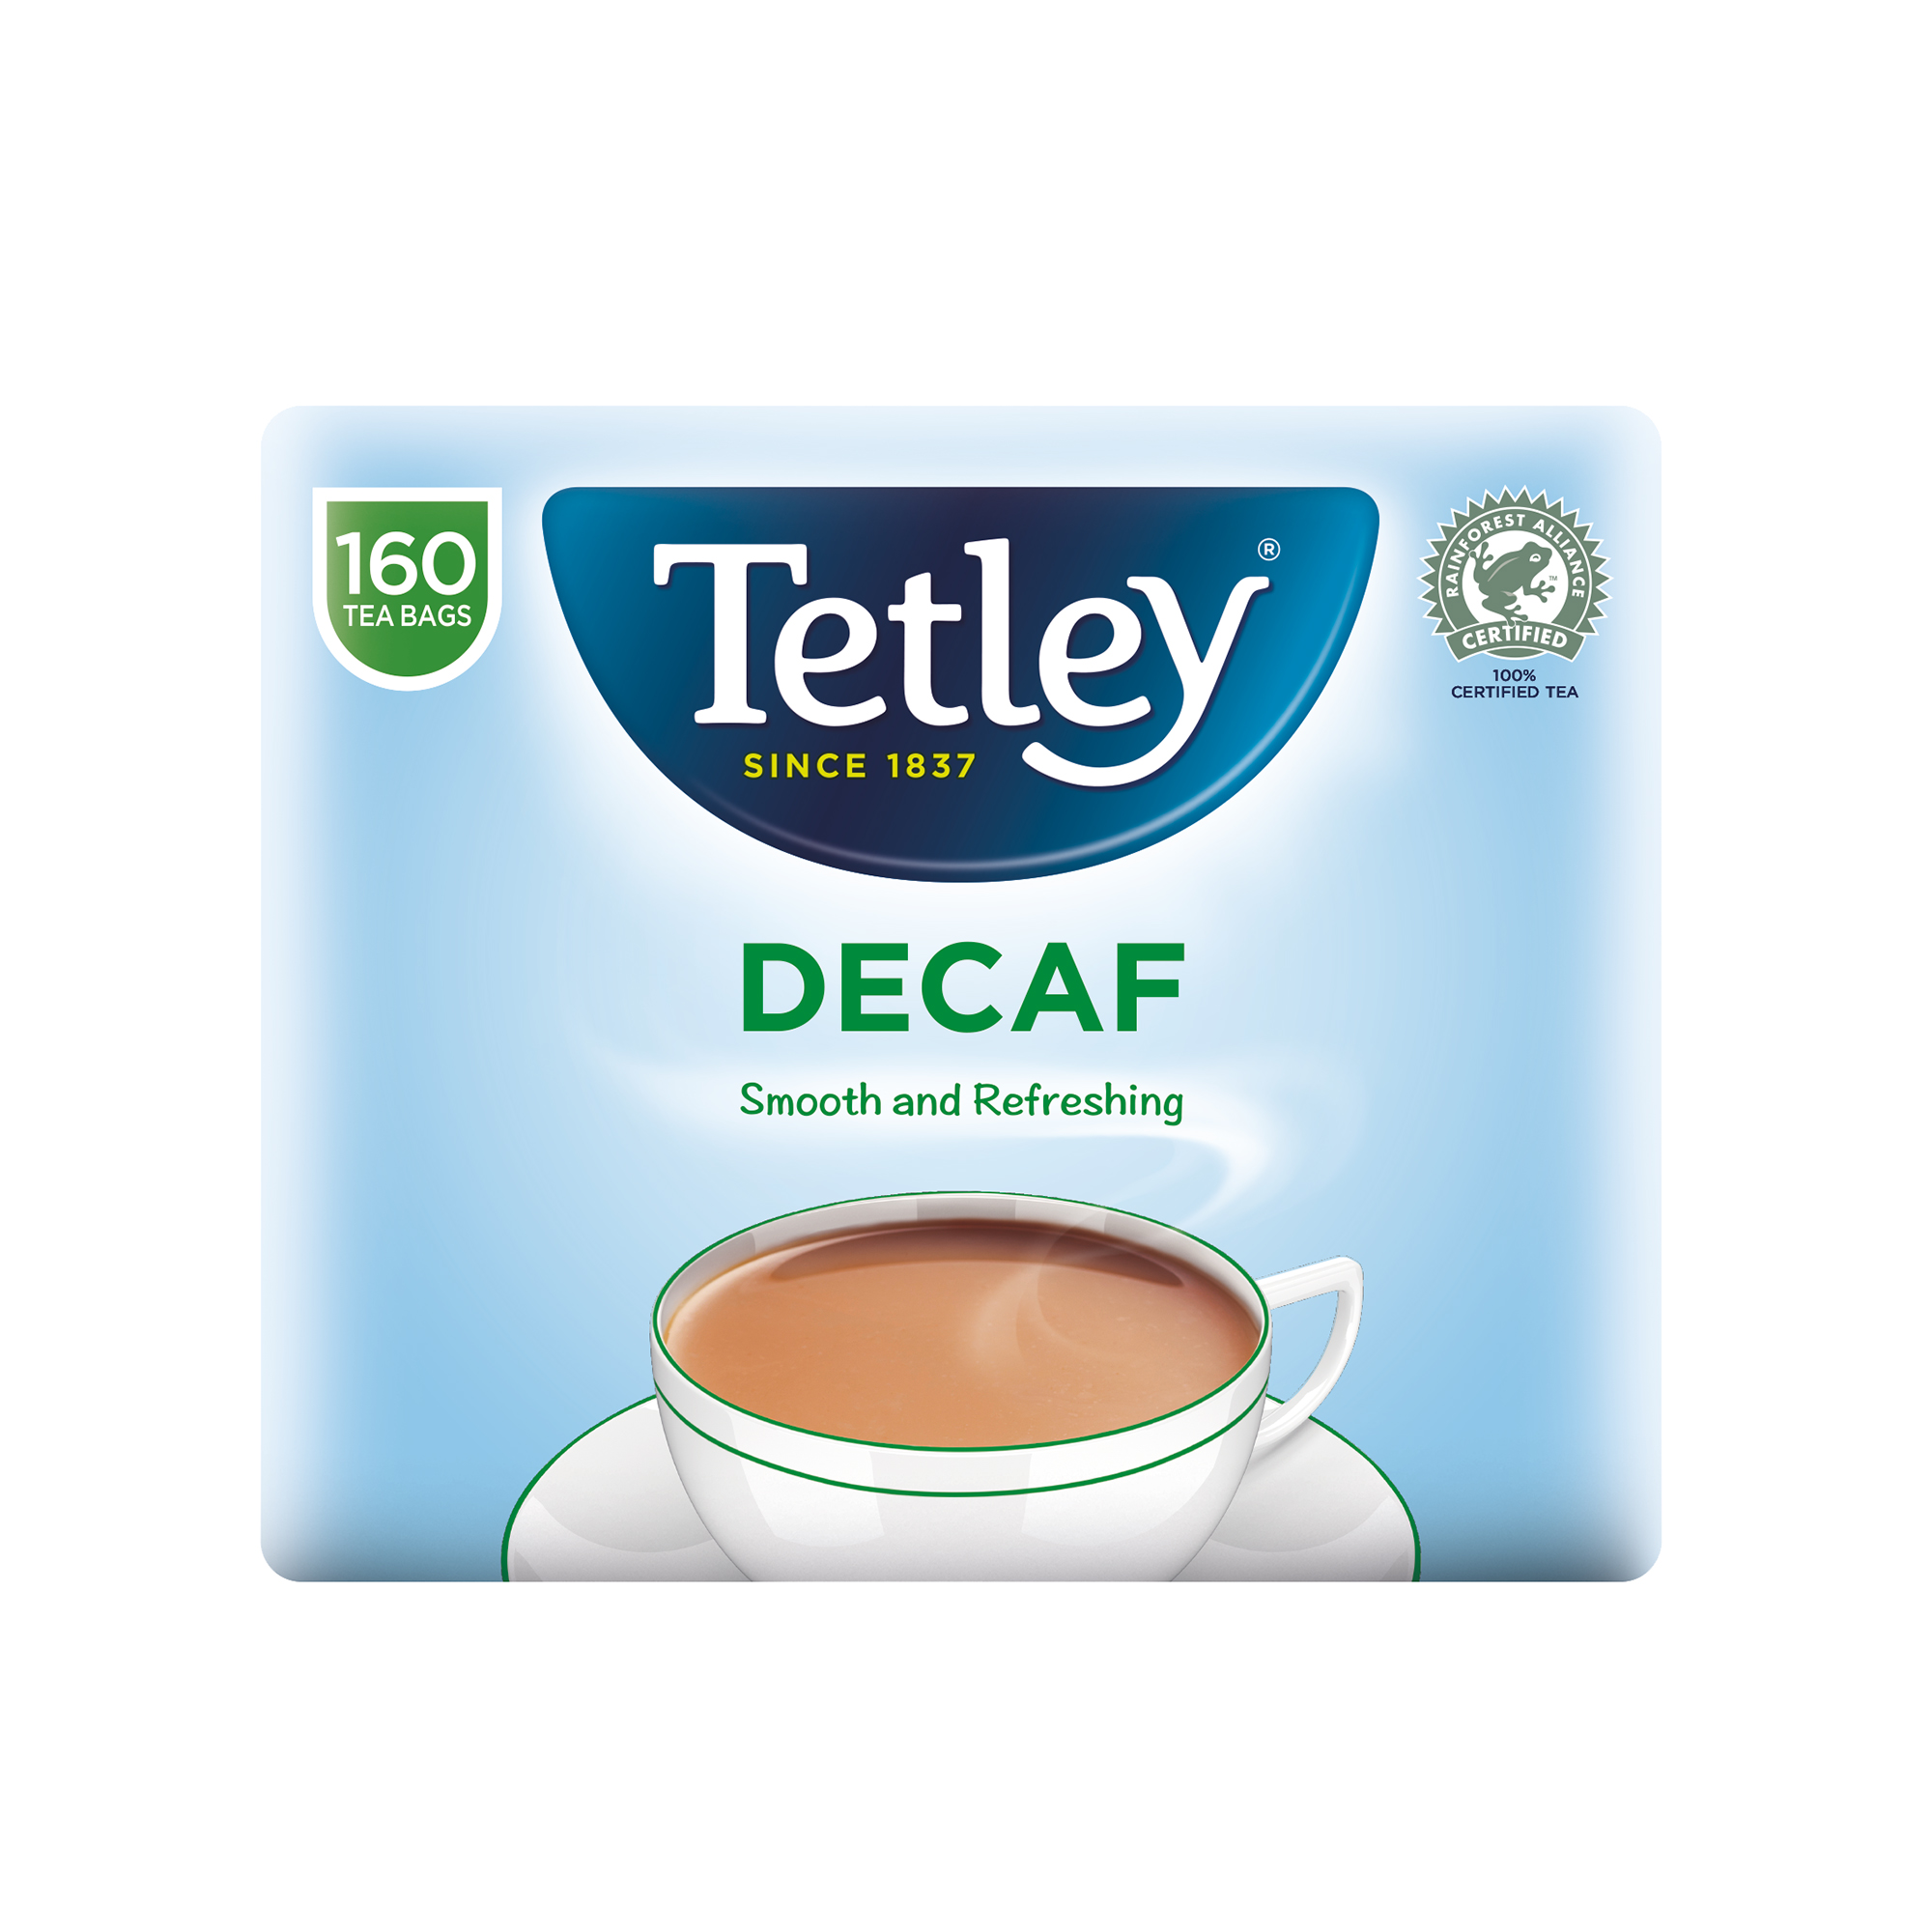 Tea Tetley Tea Bags Decaffeinated High Quality Ref 5001E Pack 160